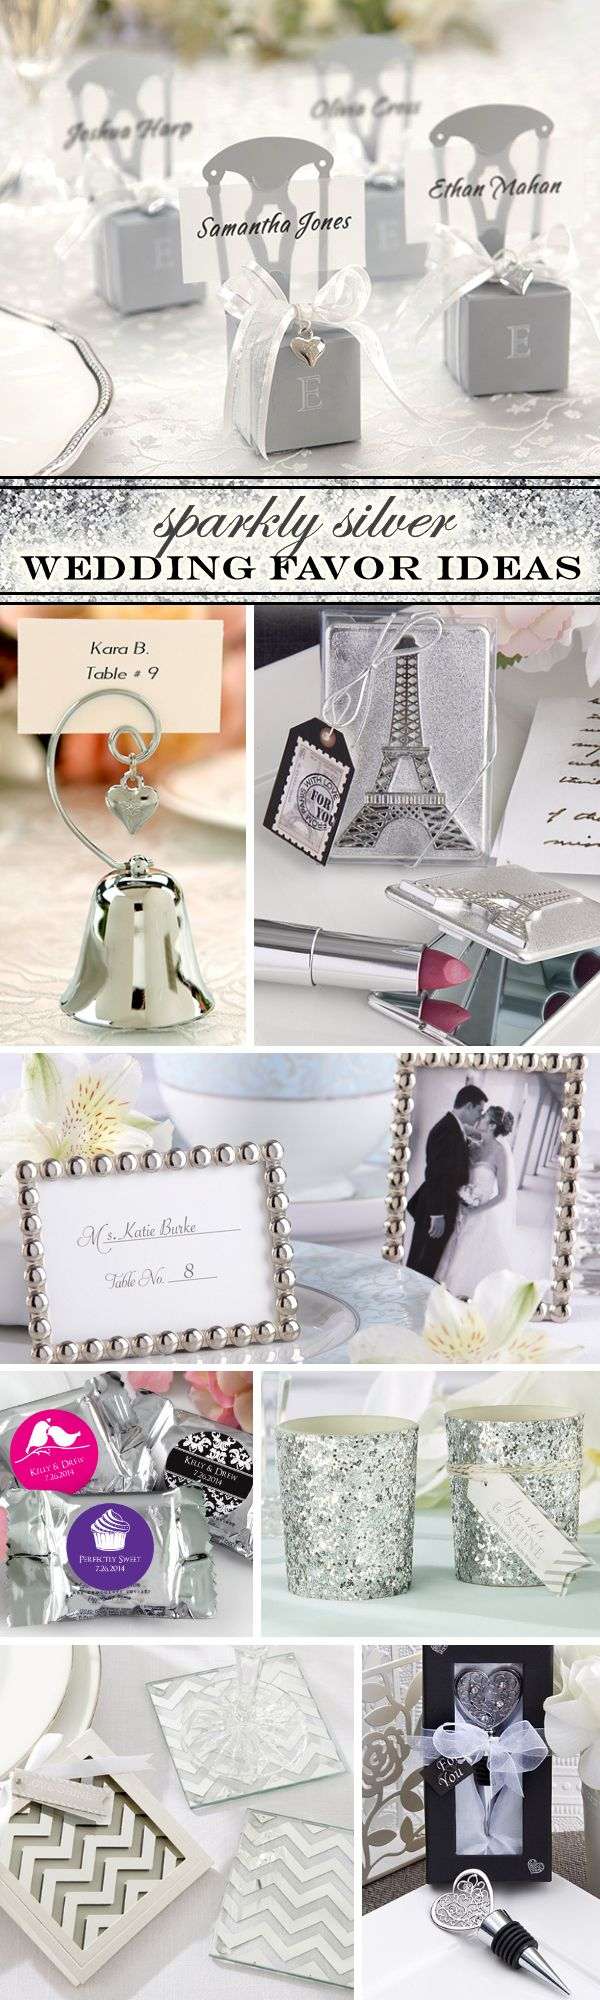 100 Sparkly Silver Wedding Favor Ideas - add some sparkle, glitter and shine to your big day!